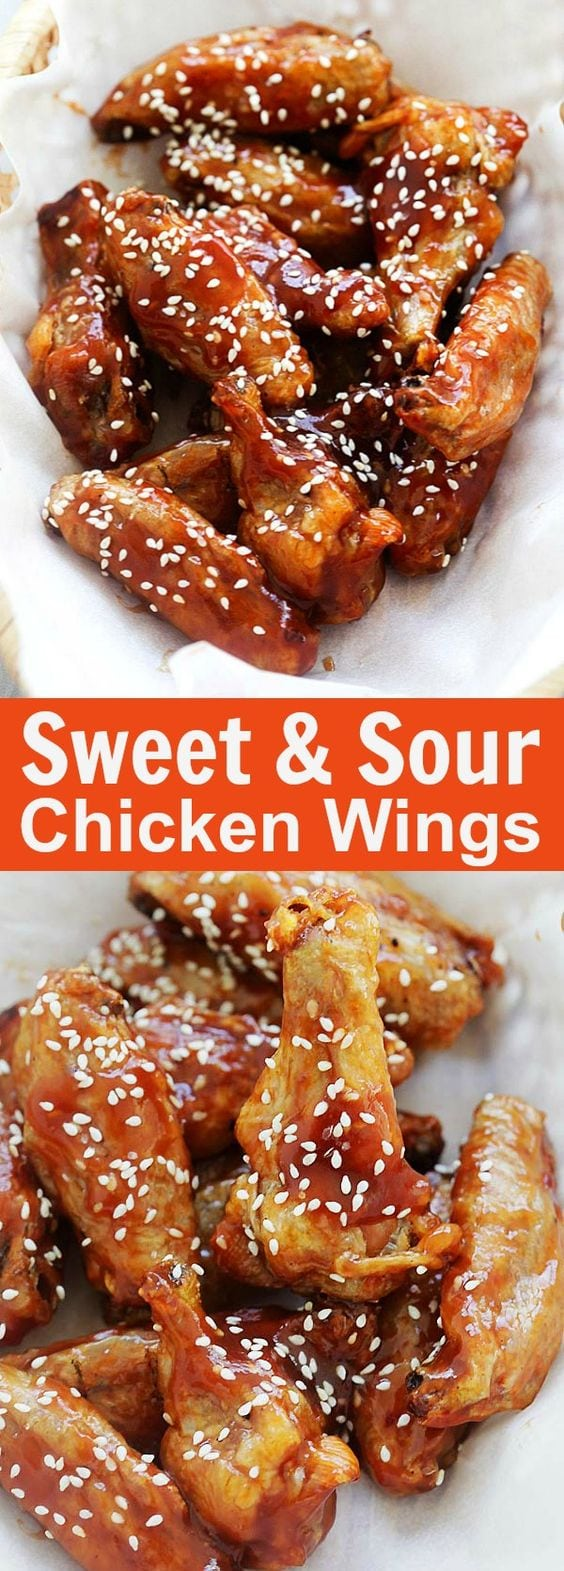 Sweet and Sour Chicken Wings - crispy oven-baked chicken wings with homemade sweet and sour sauce. These wings are addictive and delicious | rasamalaysia.com